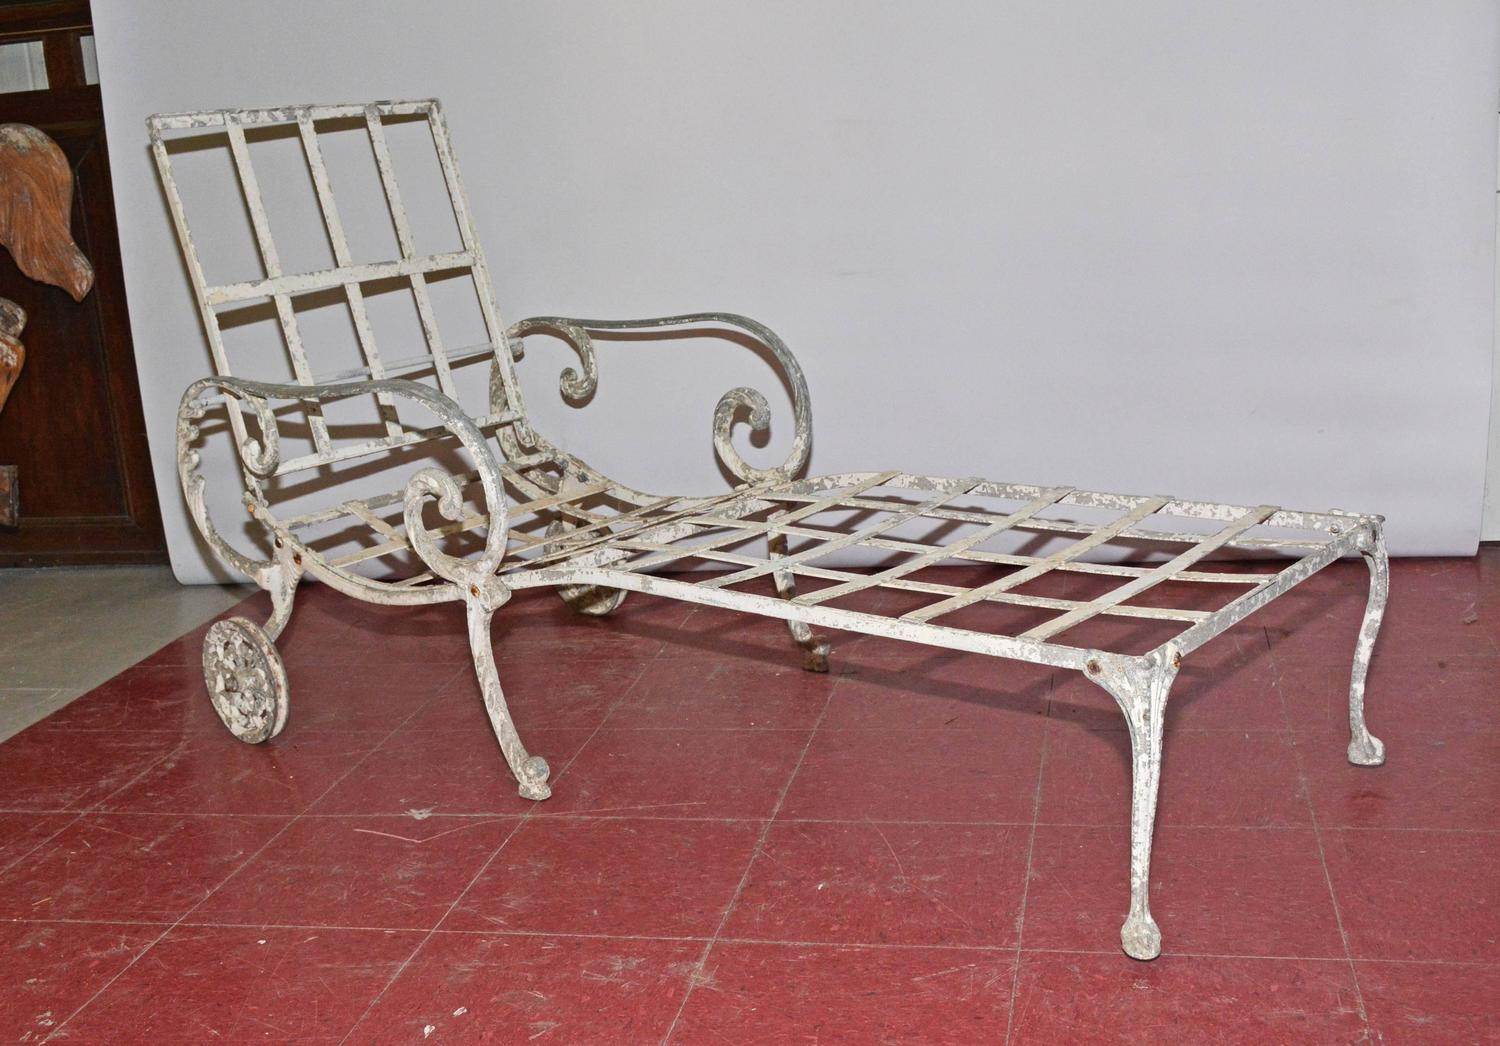 Vintage outdoor chaise longue for sale at 1stdibs for Antique chaise longue for sale